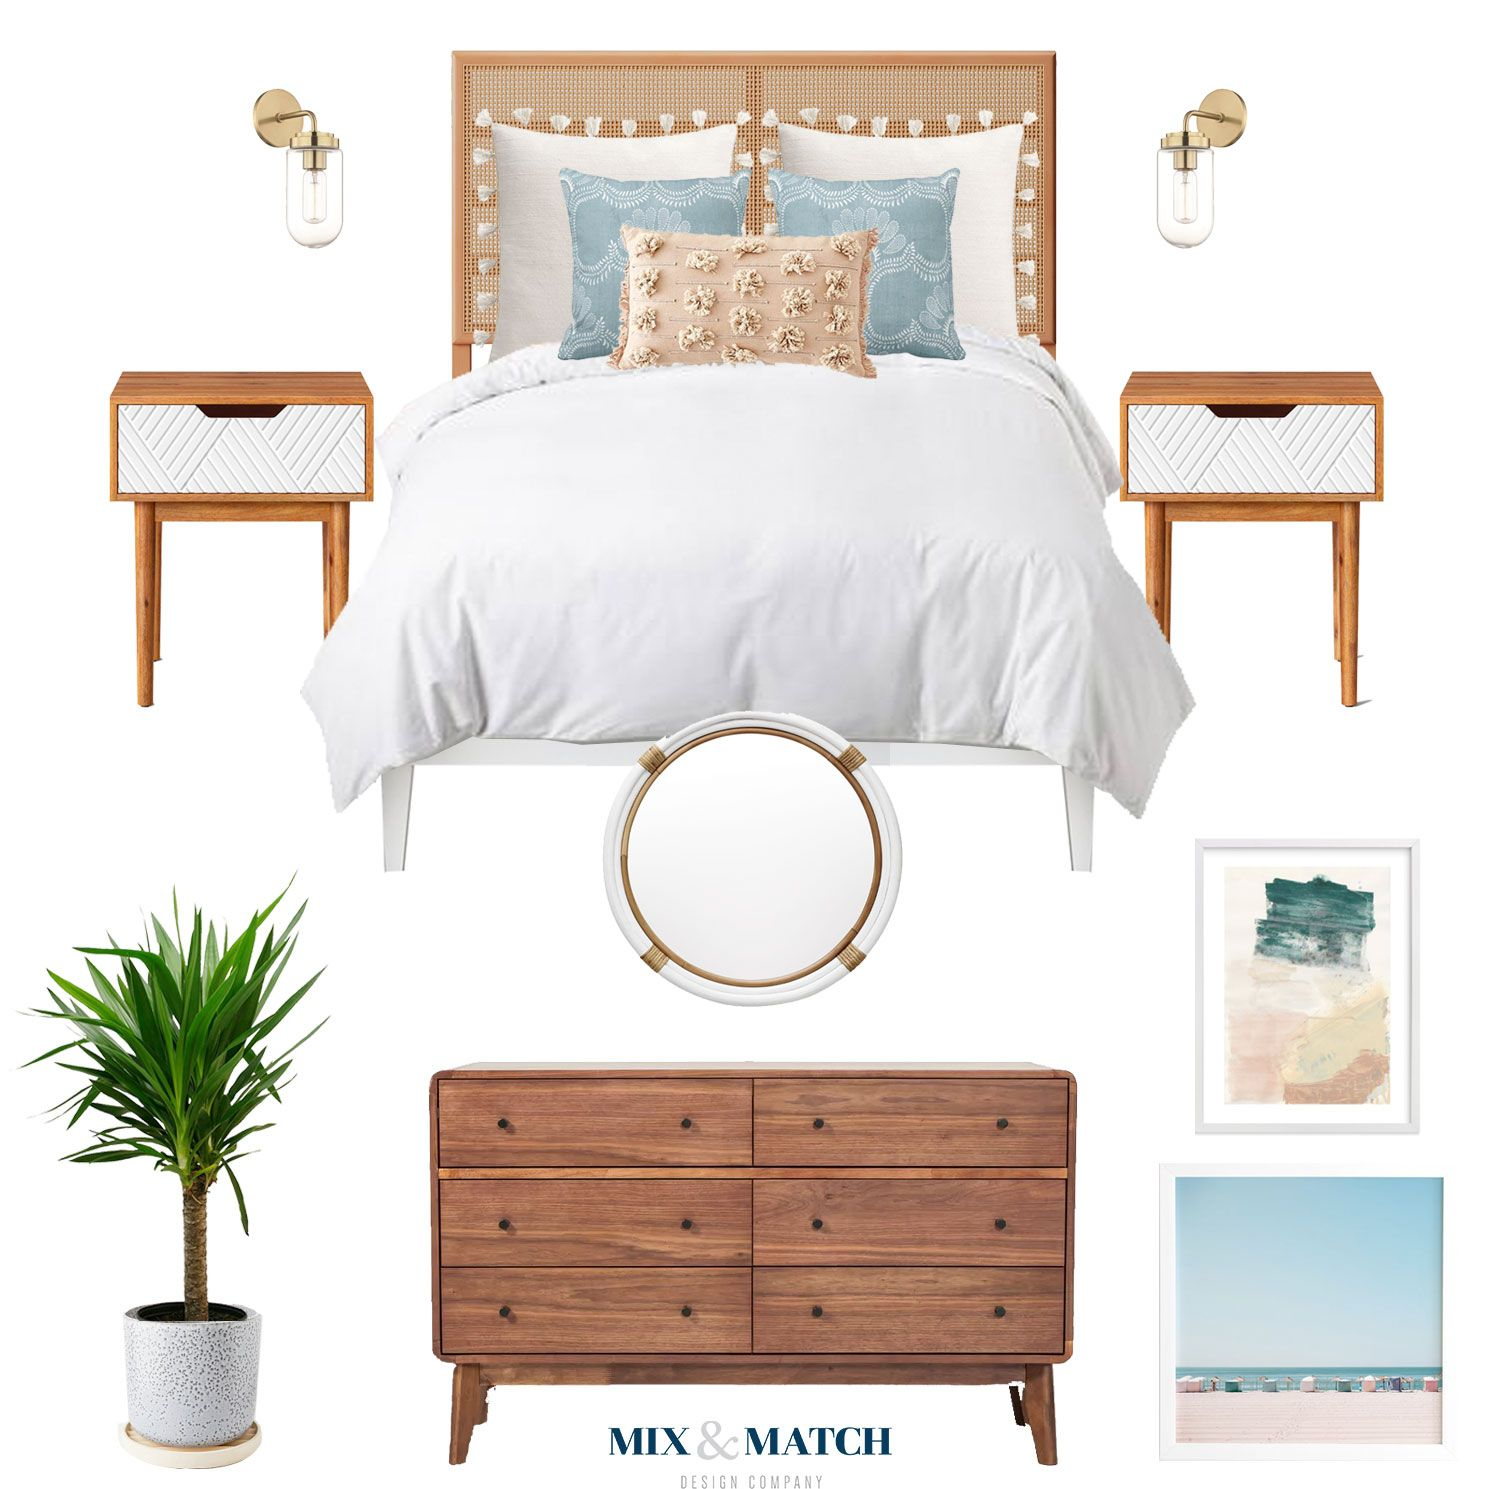 A Beachy, Laid Back Boho Inspired Bedroom Look From Mix &